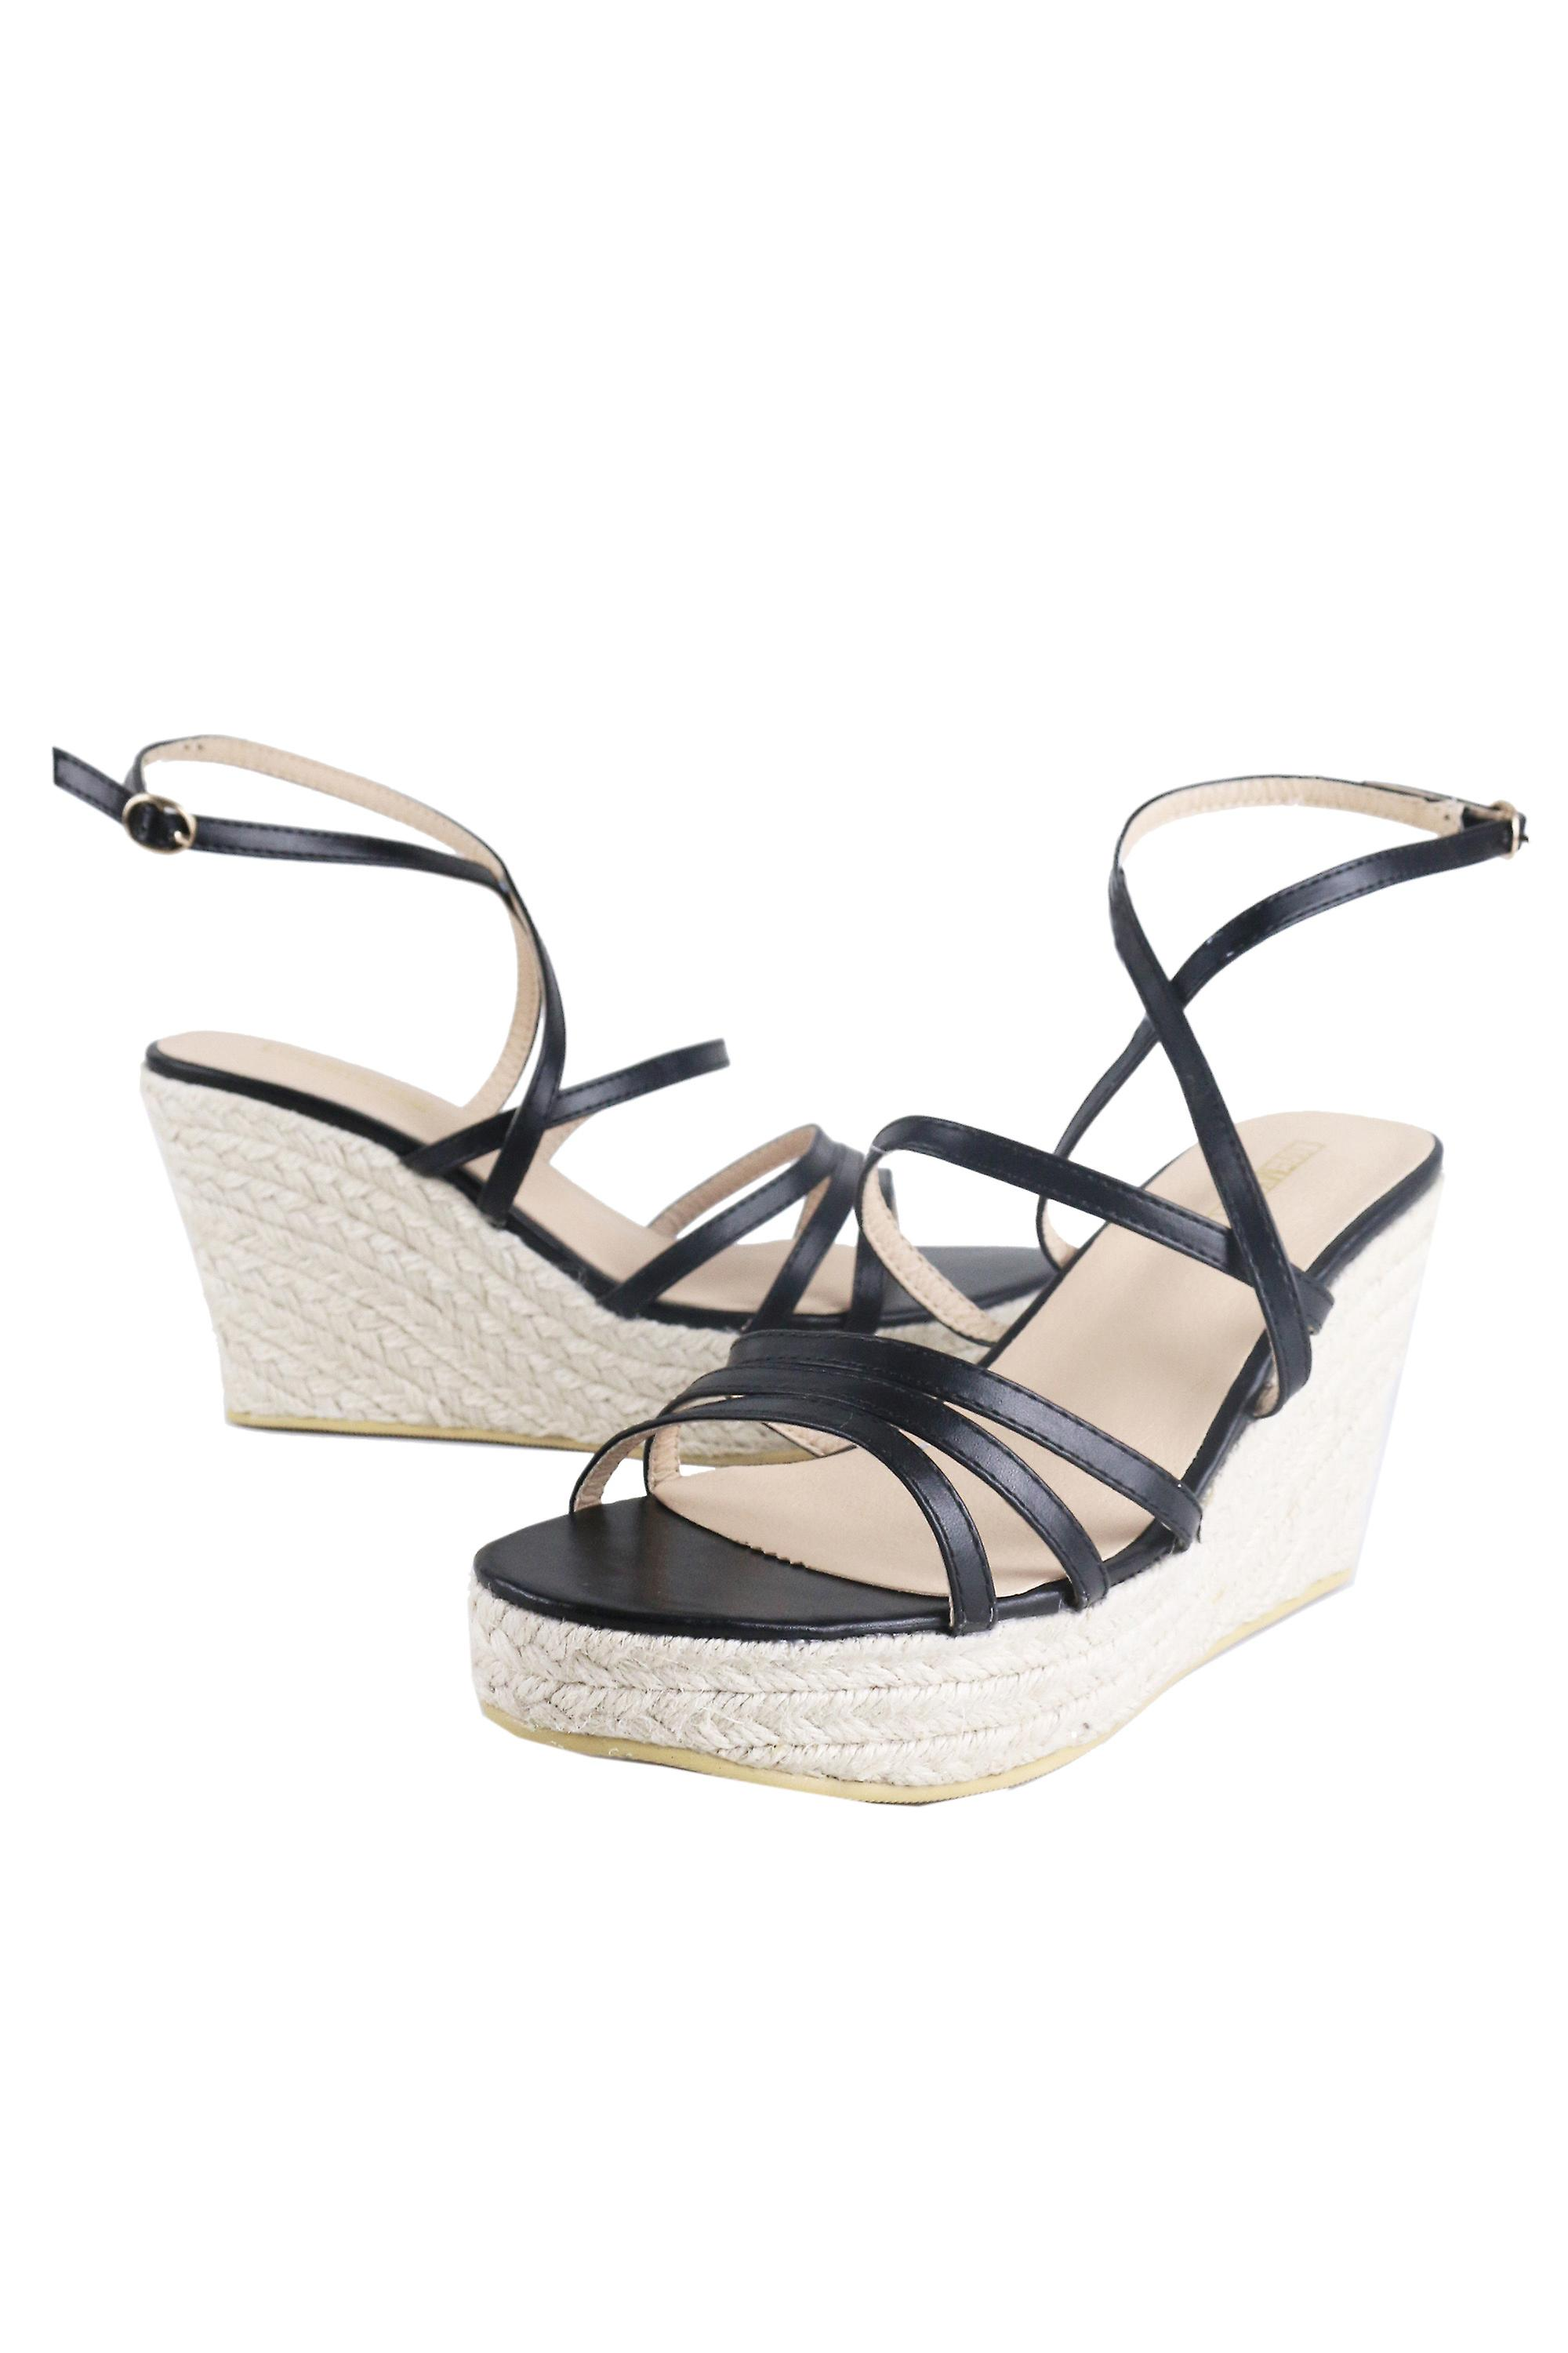 LMS Black Strappy Wedged Sandals With Rope Detail Soles